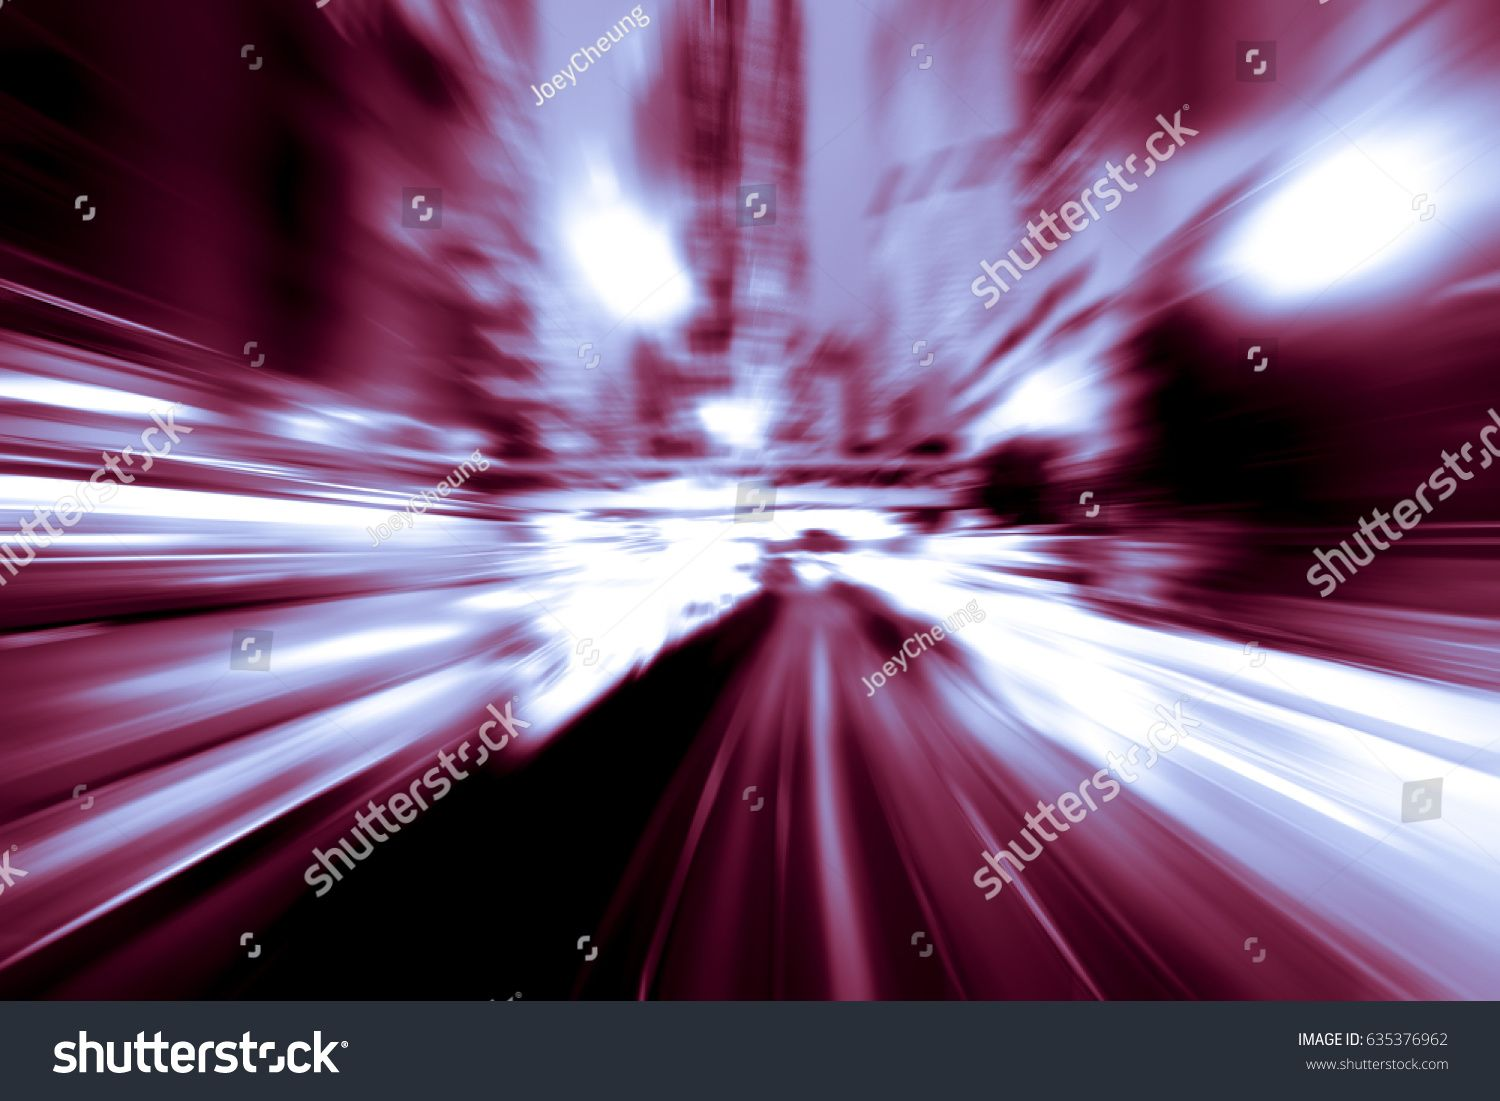 Abstract Image Of Night Traffic Light In The City With Red Color